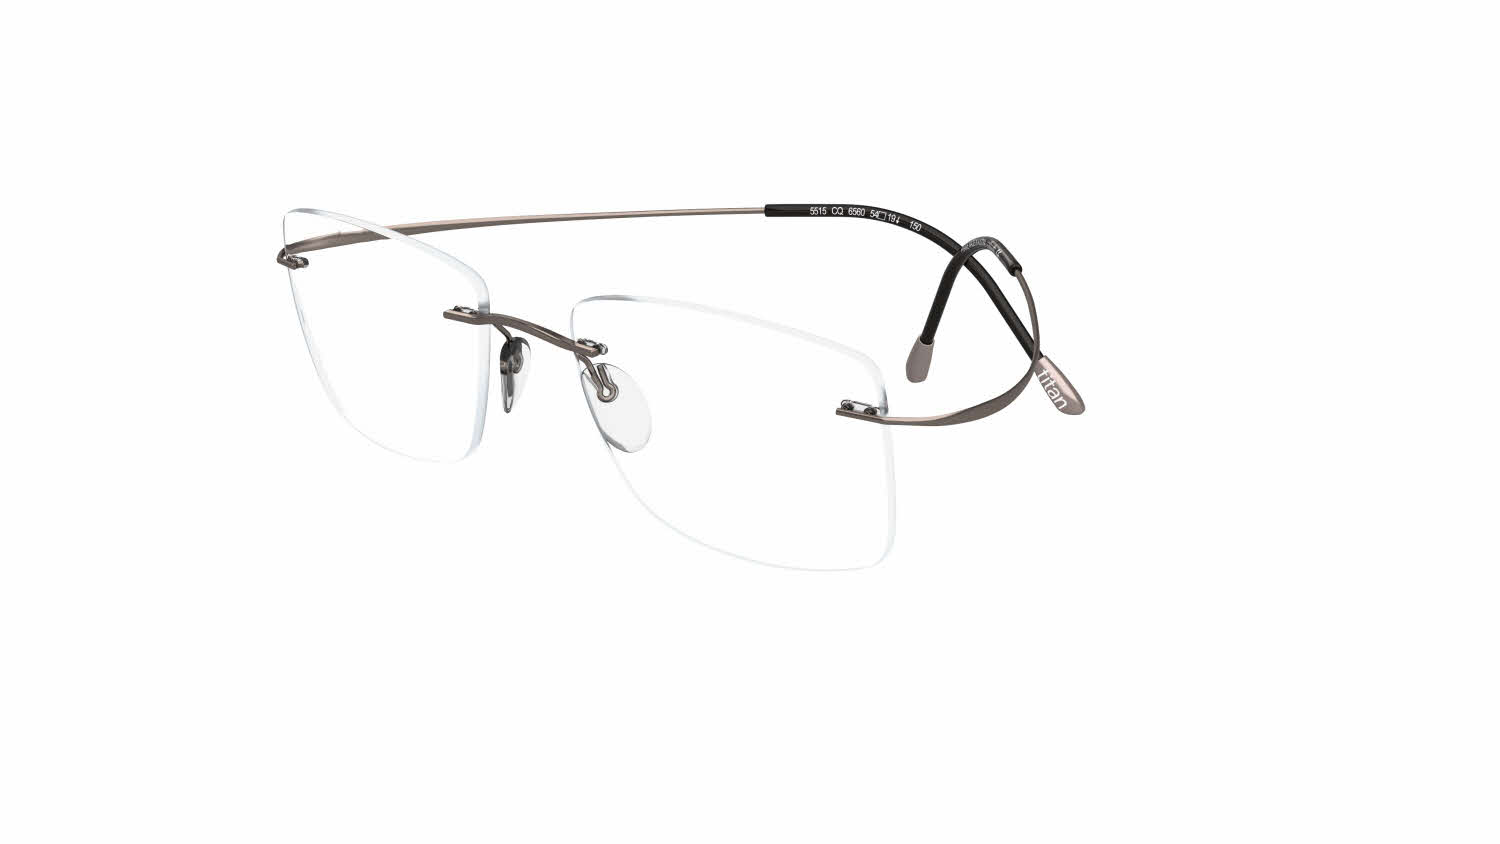 df7967cf37 Silhouette Rimless 5515 (7799) Titan Minimal Art The Must Collection  Eyeglasses